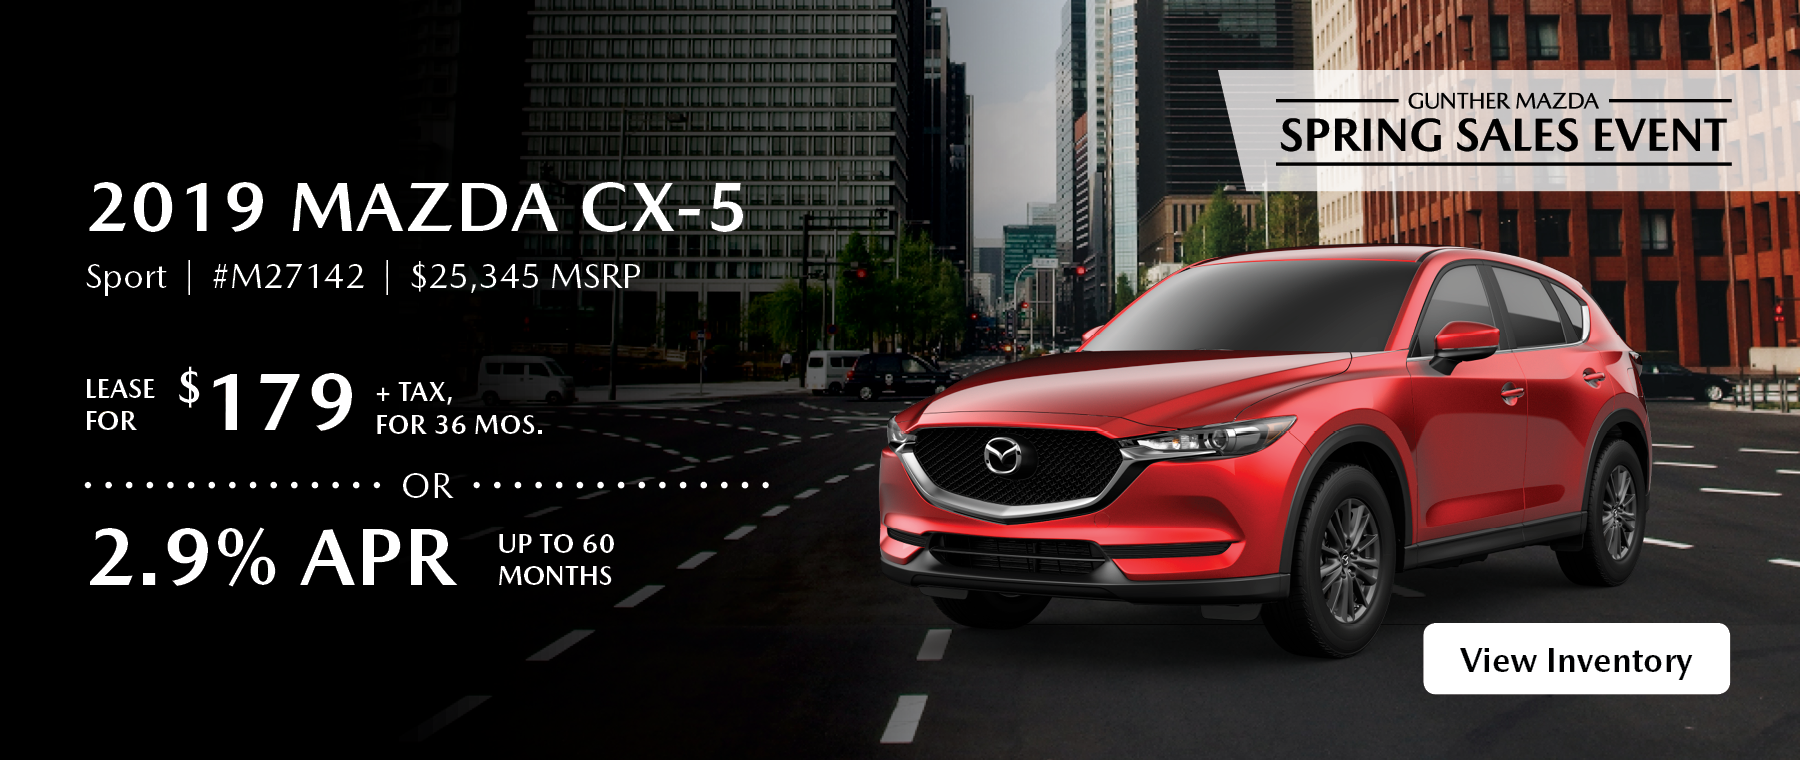 Lease the 2019 Mazda CX-5 Sport for $179 plus tax for 36 months.